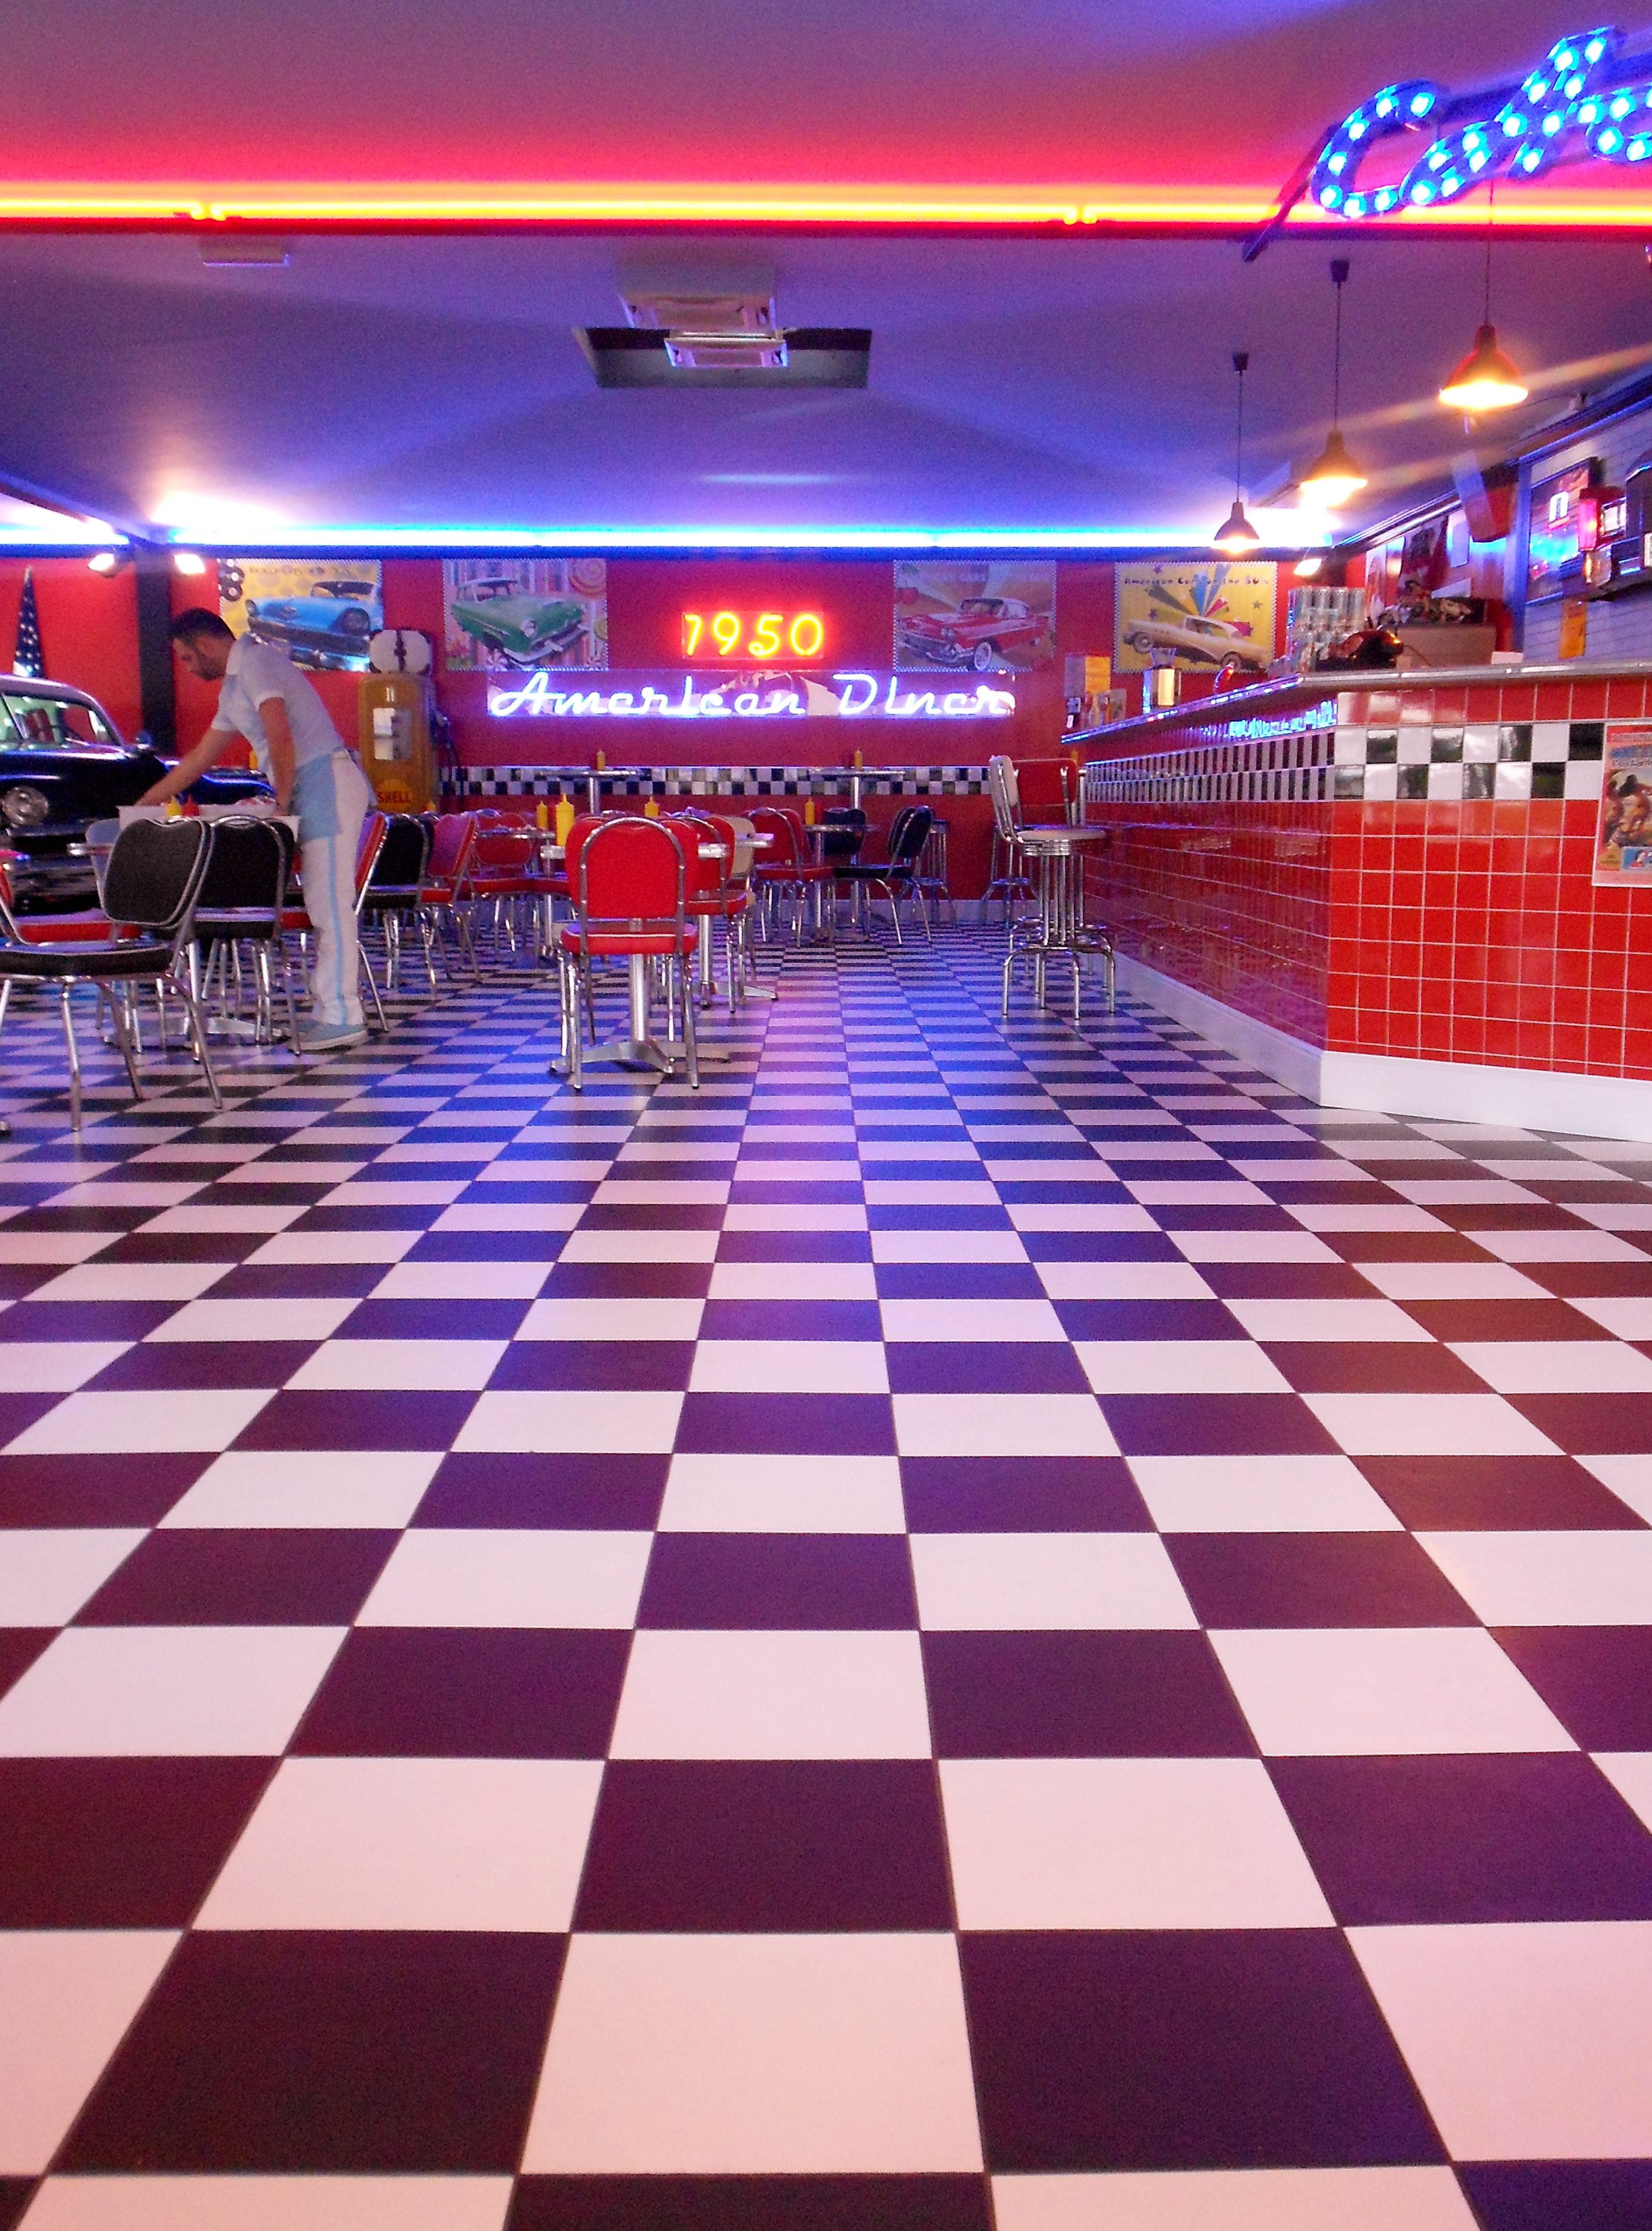 1950's American Diner